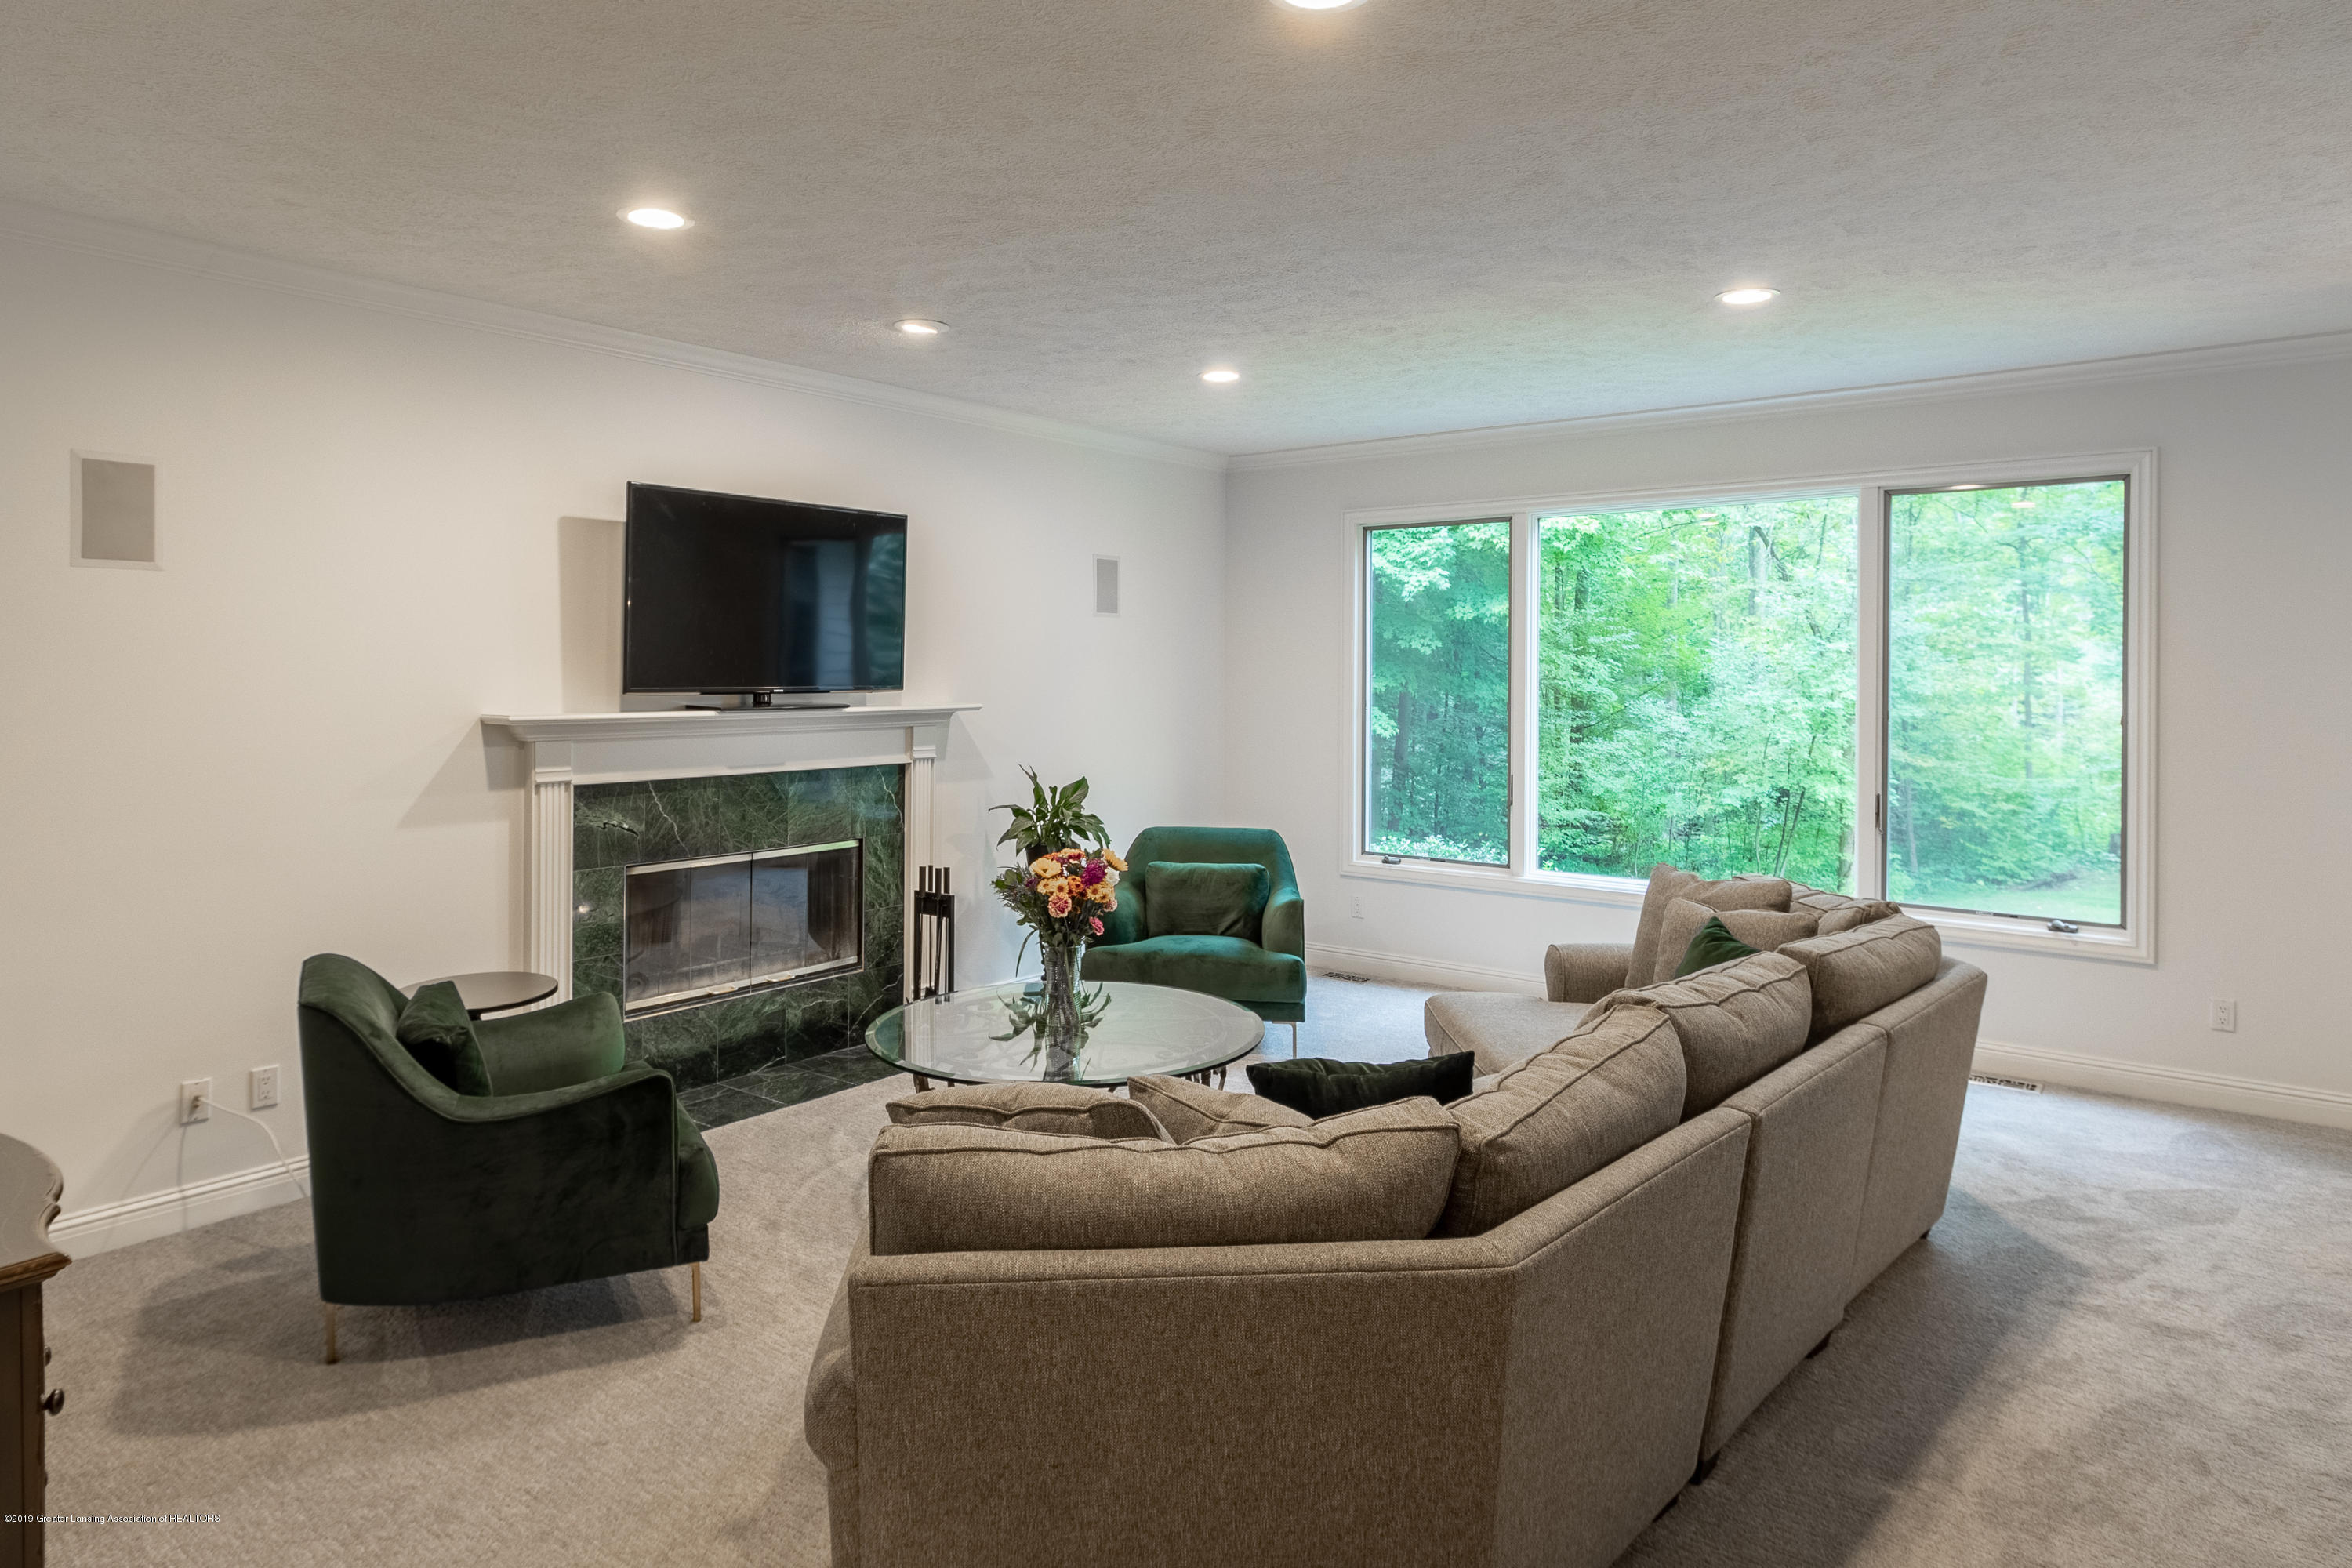 3700 Beech Tree Ln - FAMILY ROOM - 26